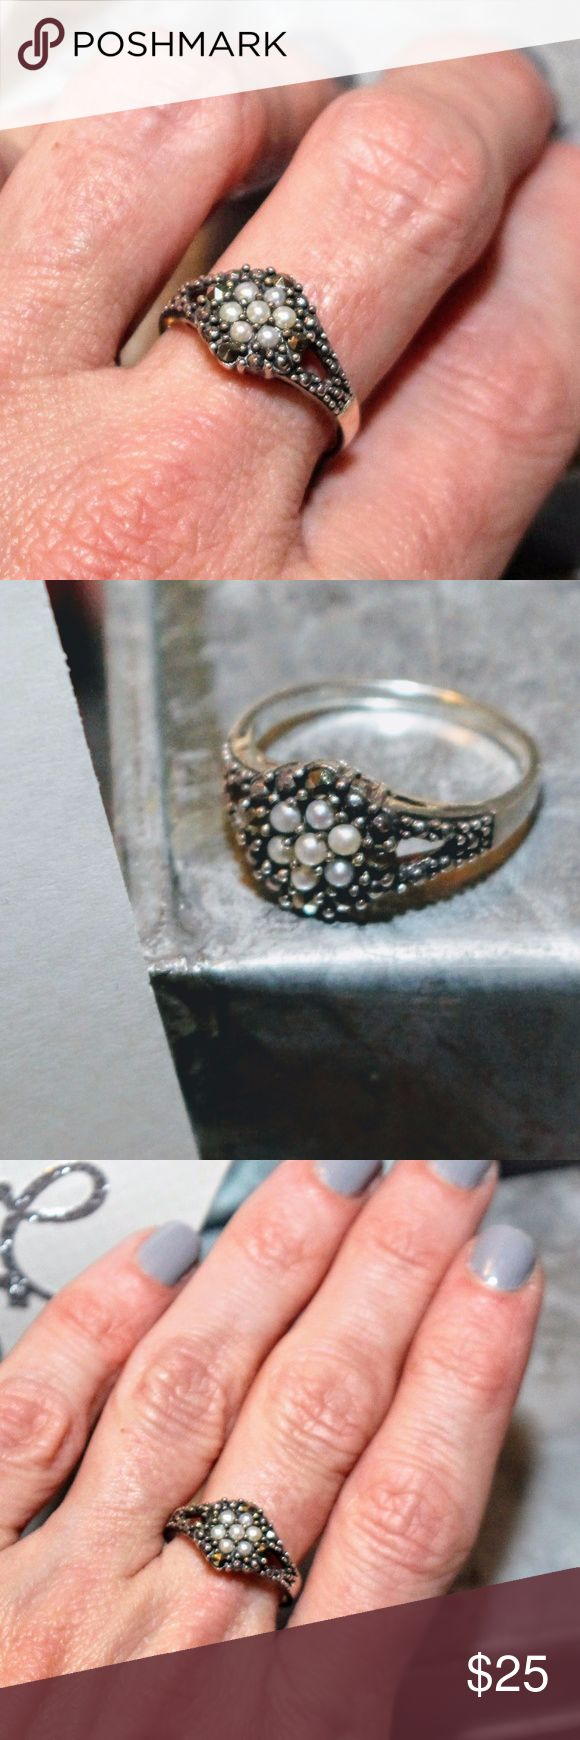 Beautiful .925 Sterling Marcasite & Pearl Ring Beautiful .925 Sterling Marcasite & Pearl Ring.  Size 8. Von Maur Jewelry Rings